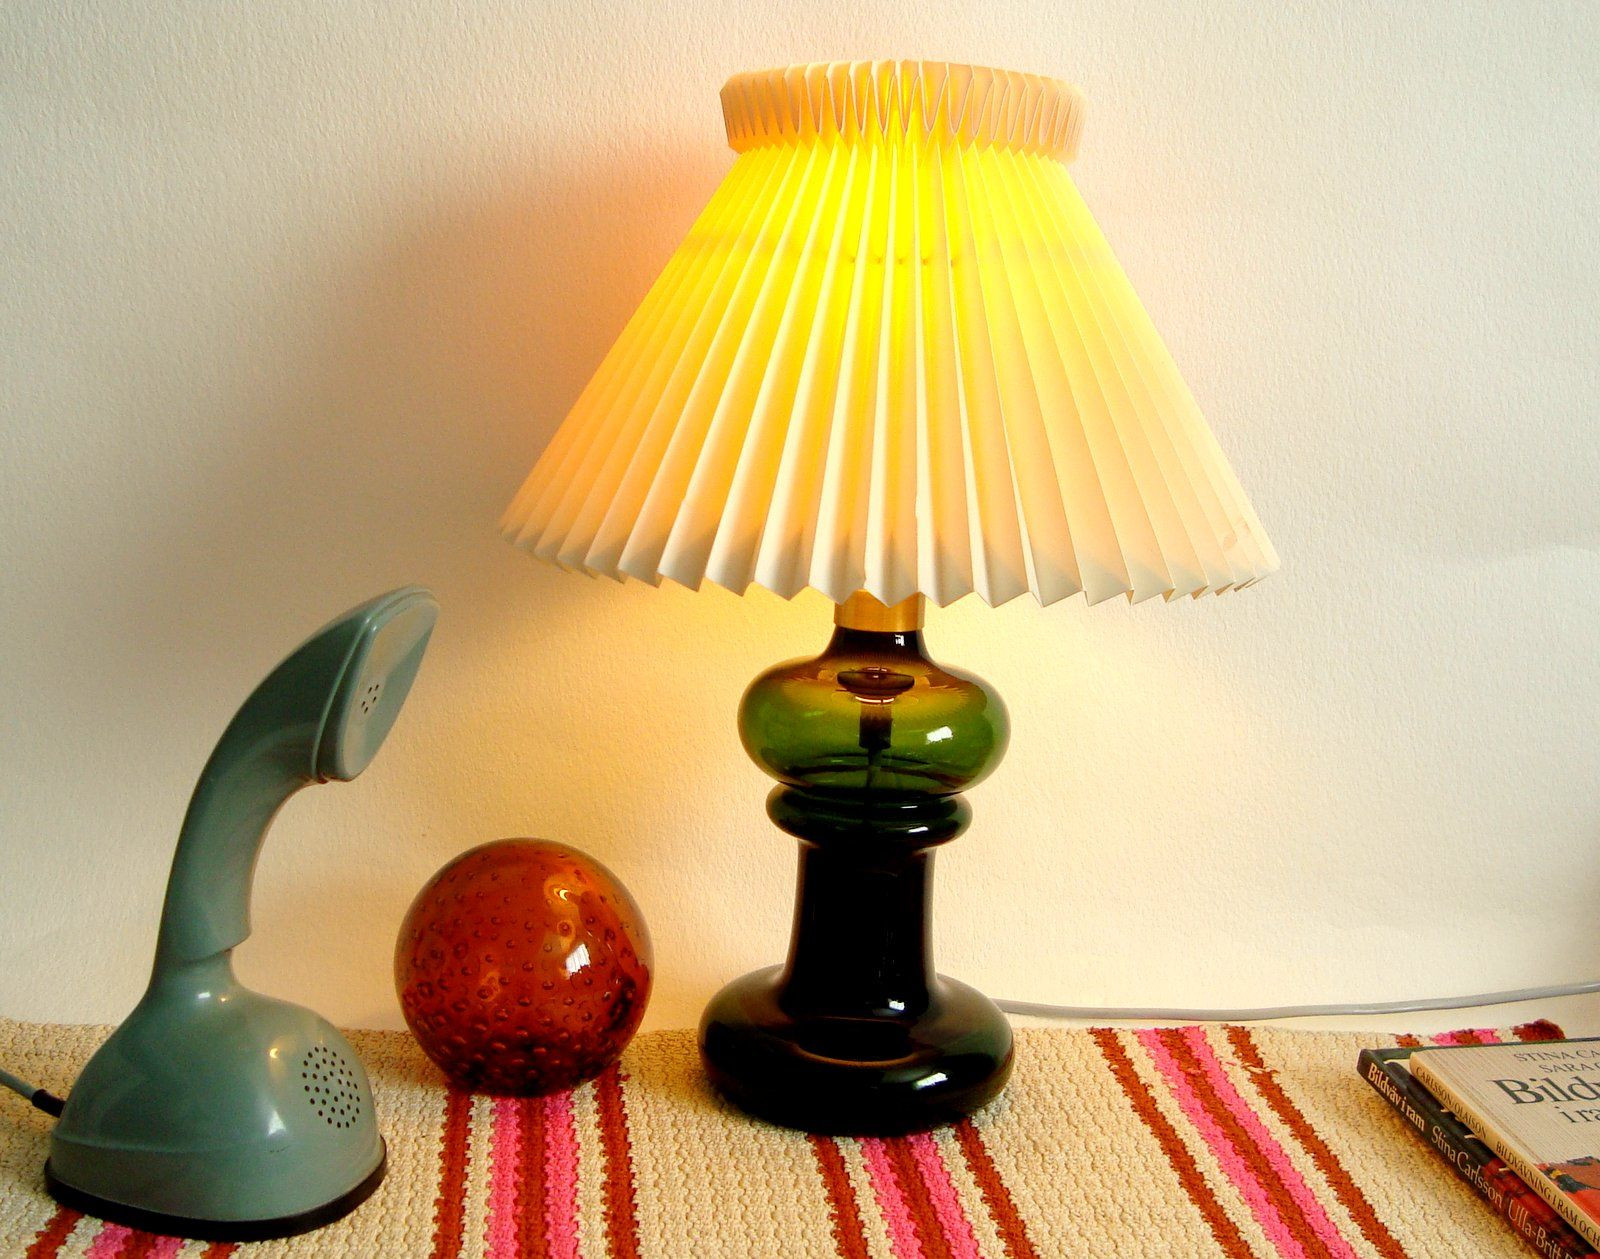 light bulb vase michaels of holmegaard table lamp by michael bang dark green glass mid throughout a beautiful mid century modern table lamp in forest green with a brass top design michael bang for holmegaard od denmark